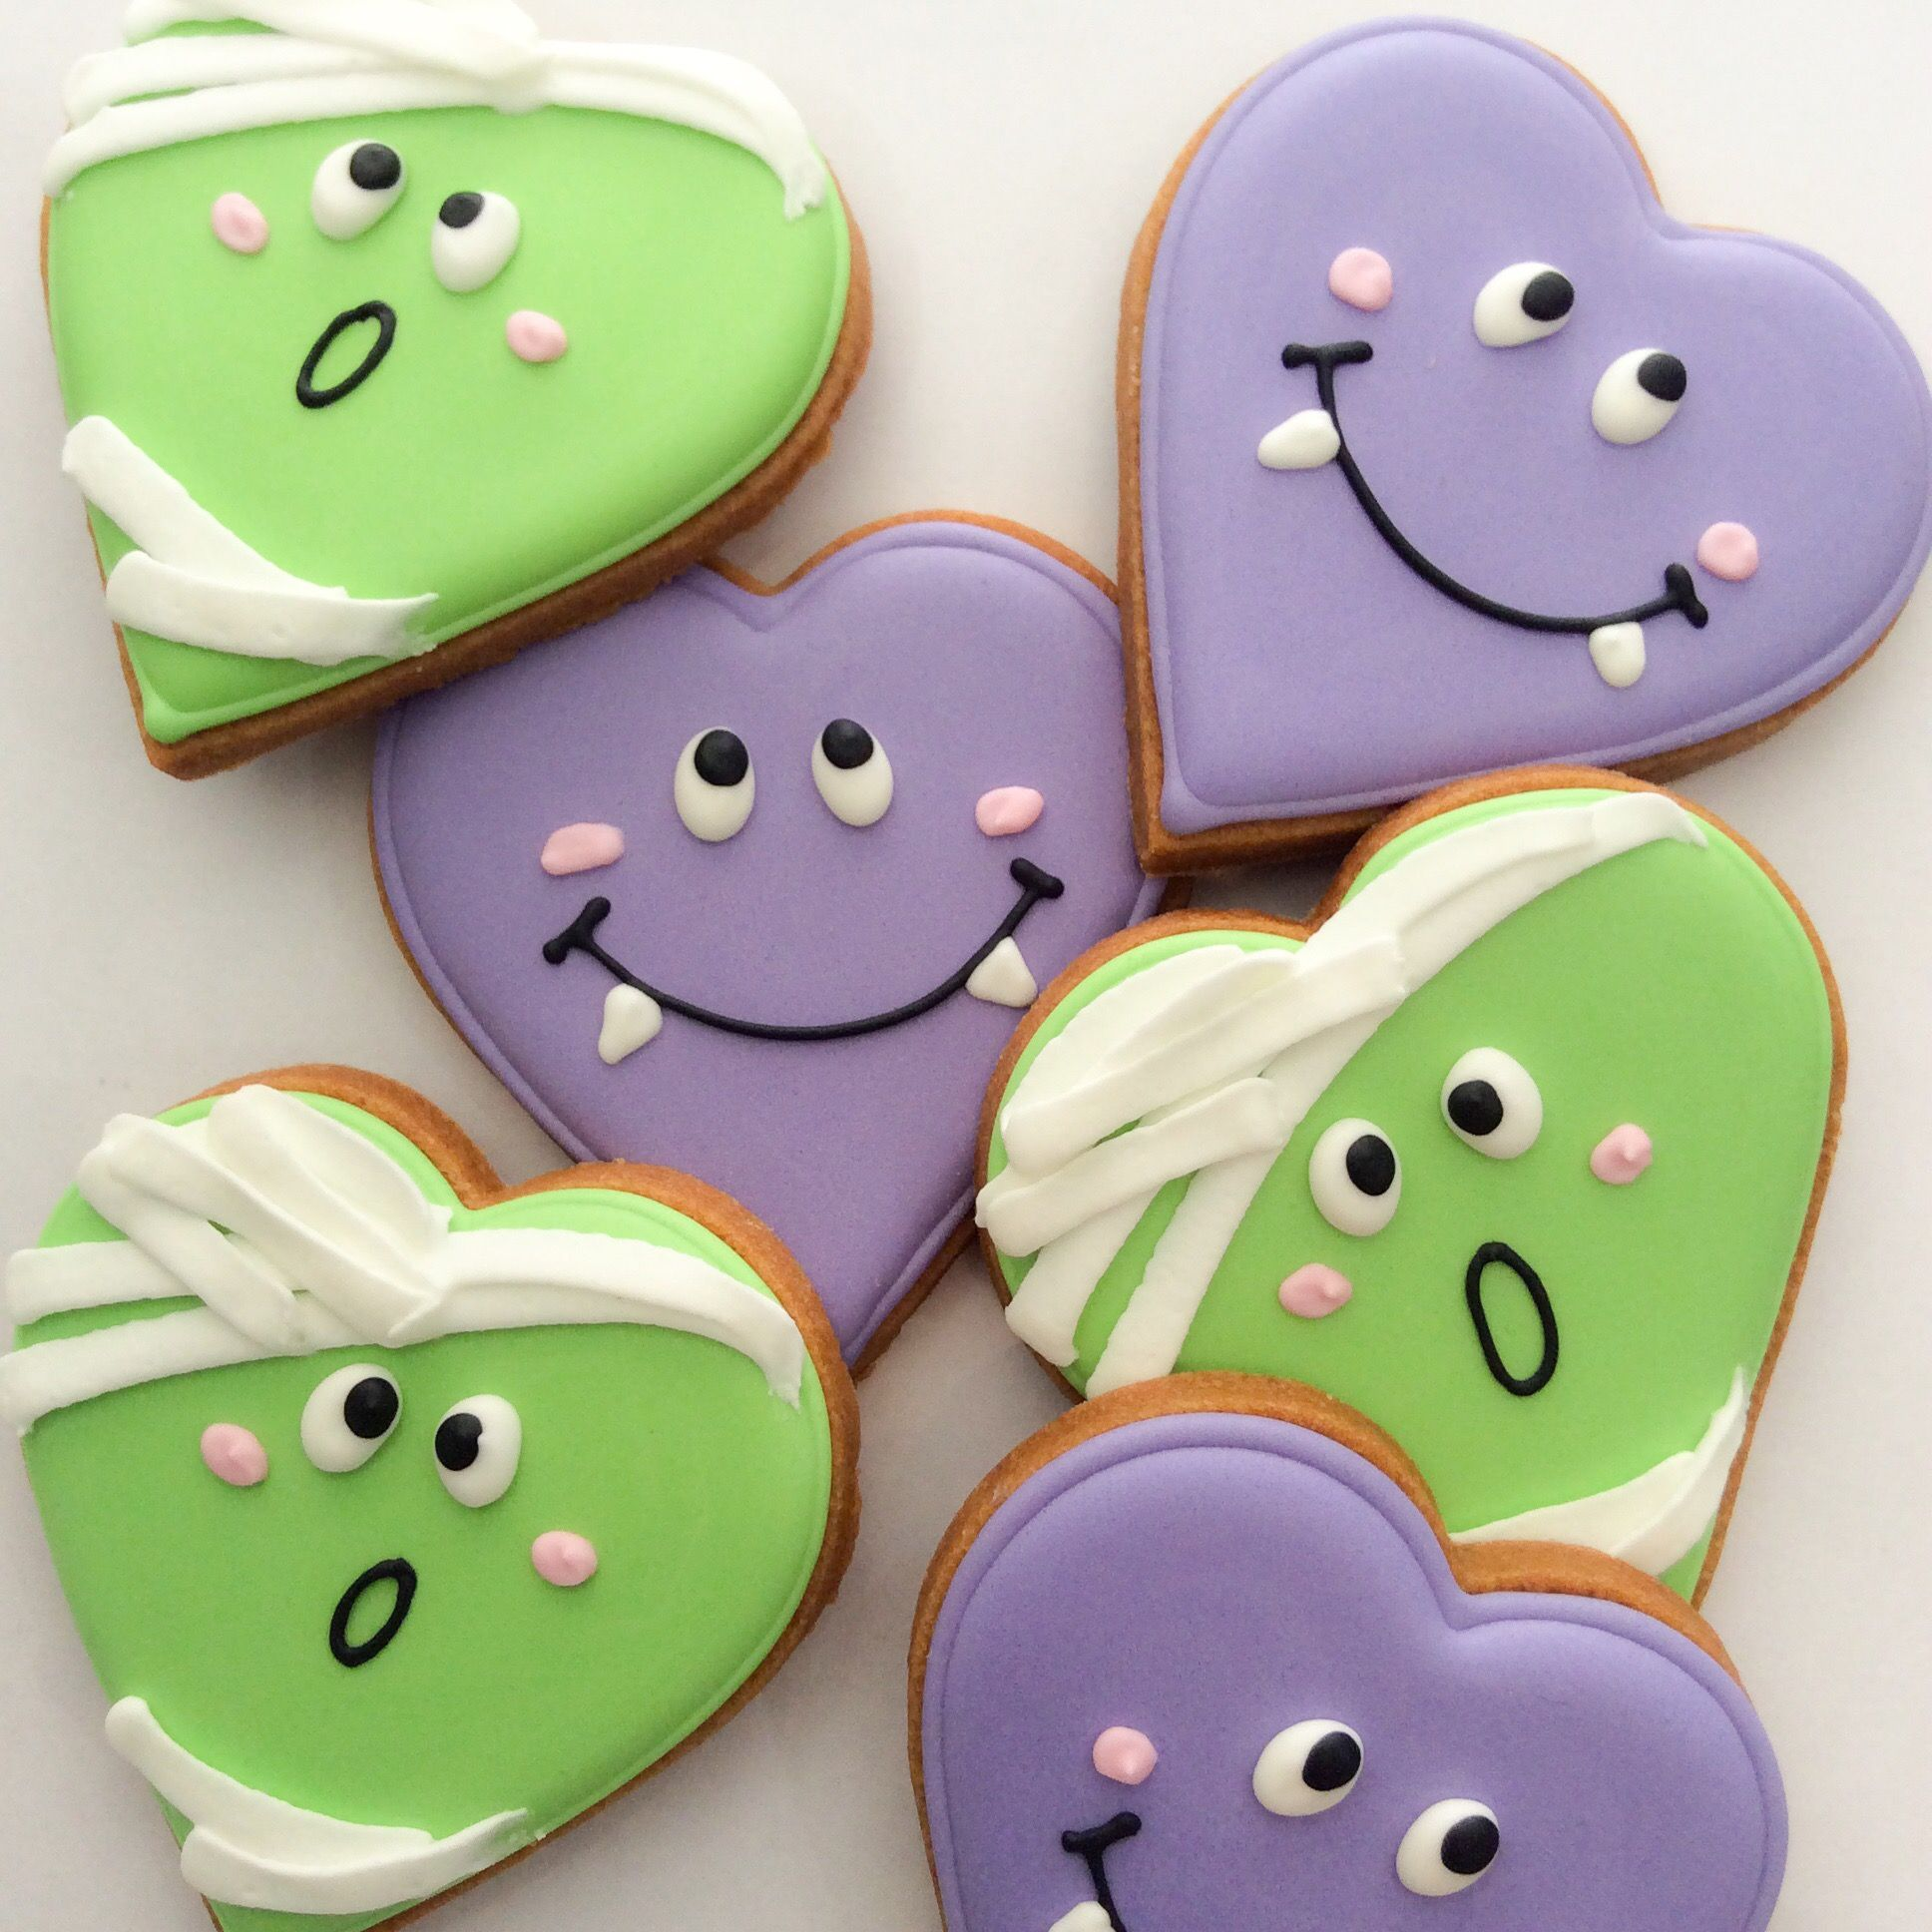 Funny pussy cookies — photo 13